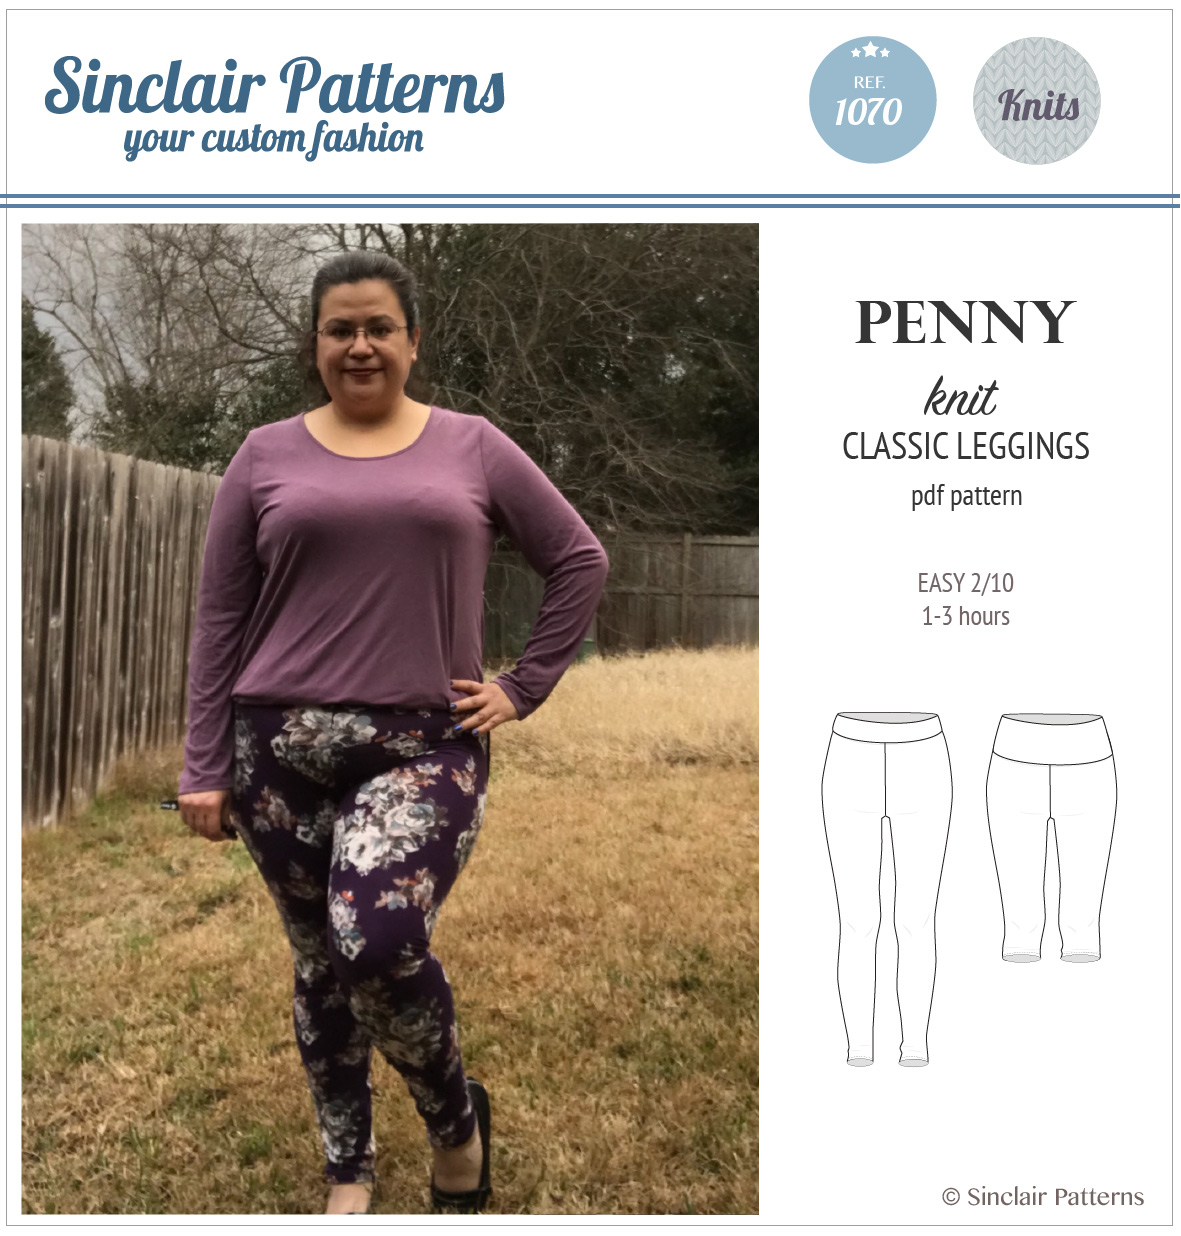 Sinclair Patterns S1070 Penny leggings pdf sewing pattern pdf for women